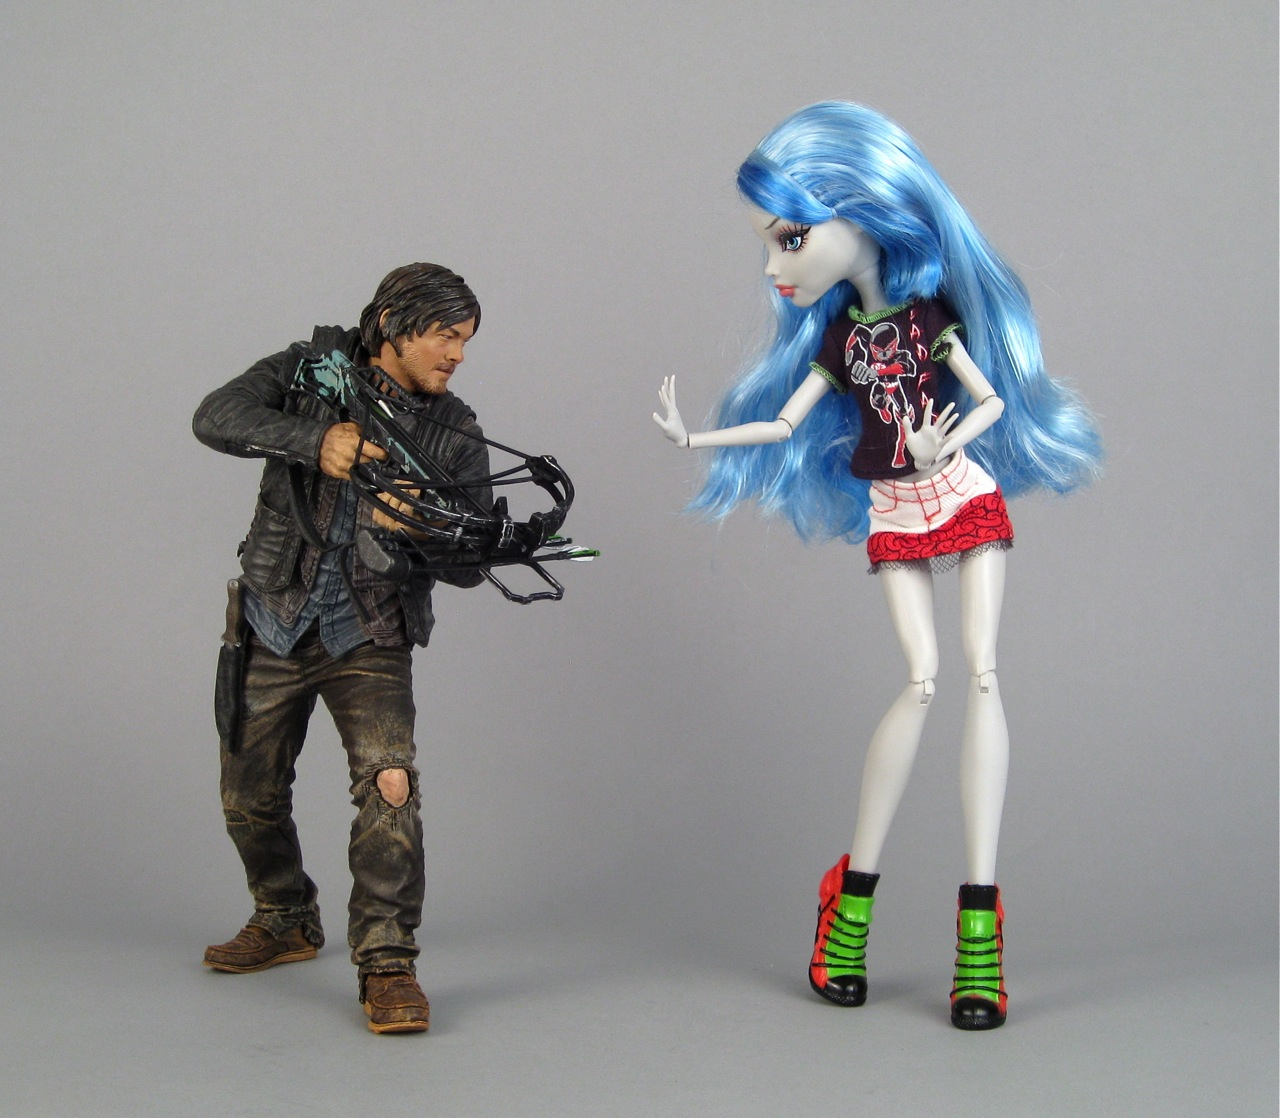 Daryl meets Ghoulia